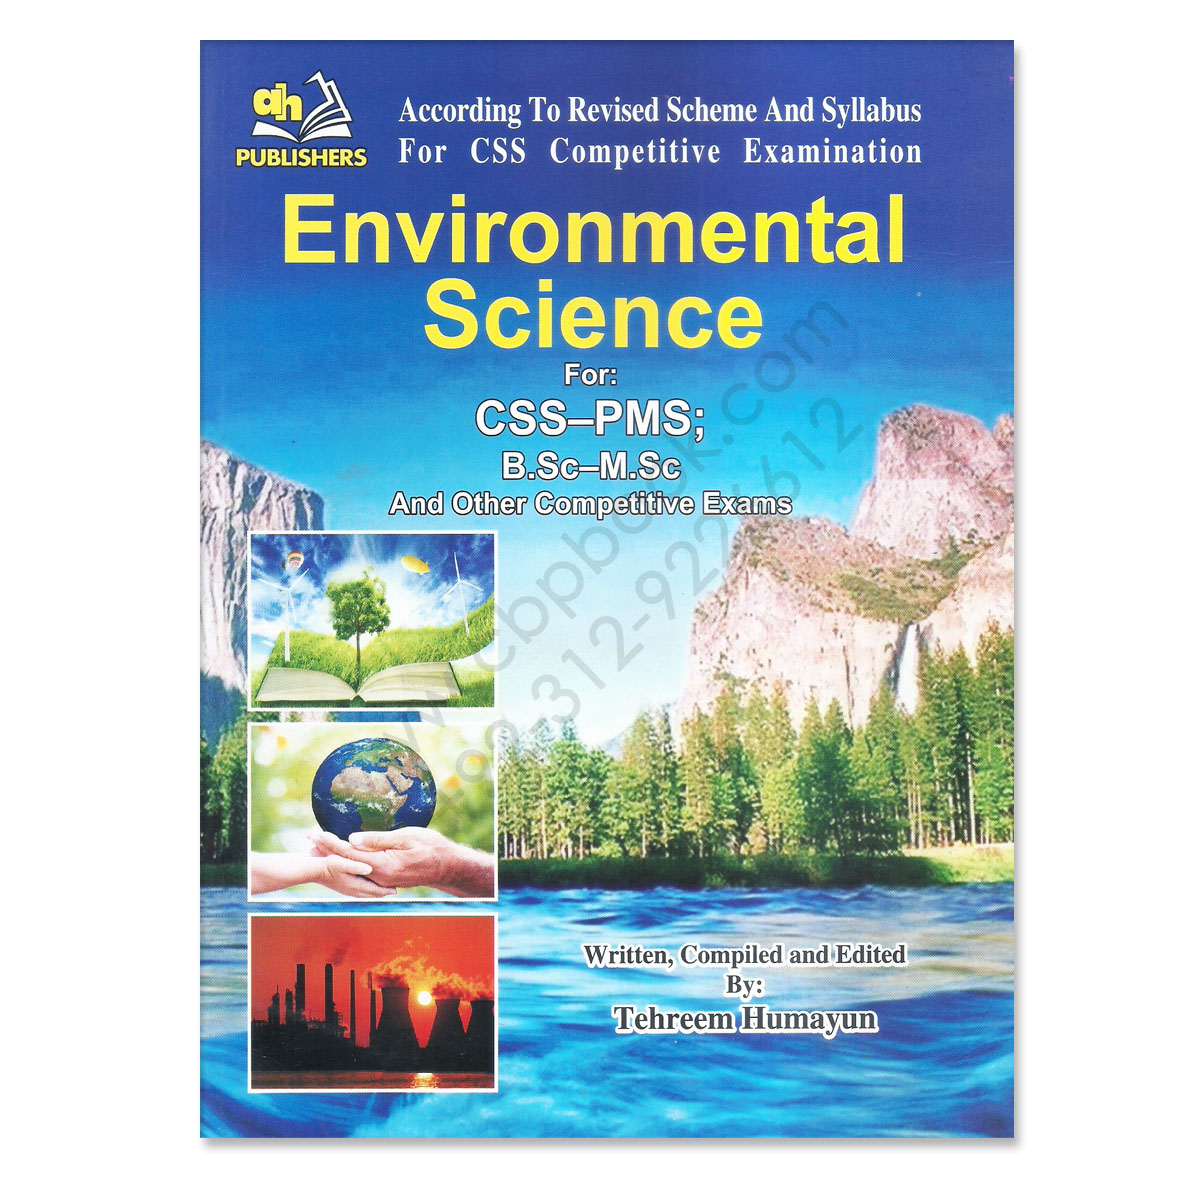 Environmental Science cheapest buys online